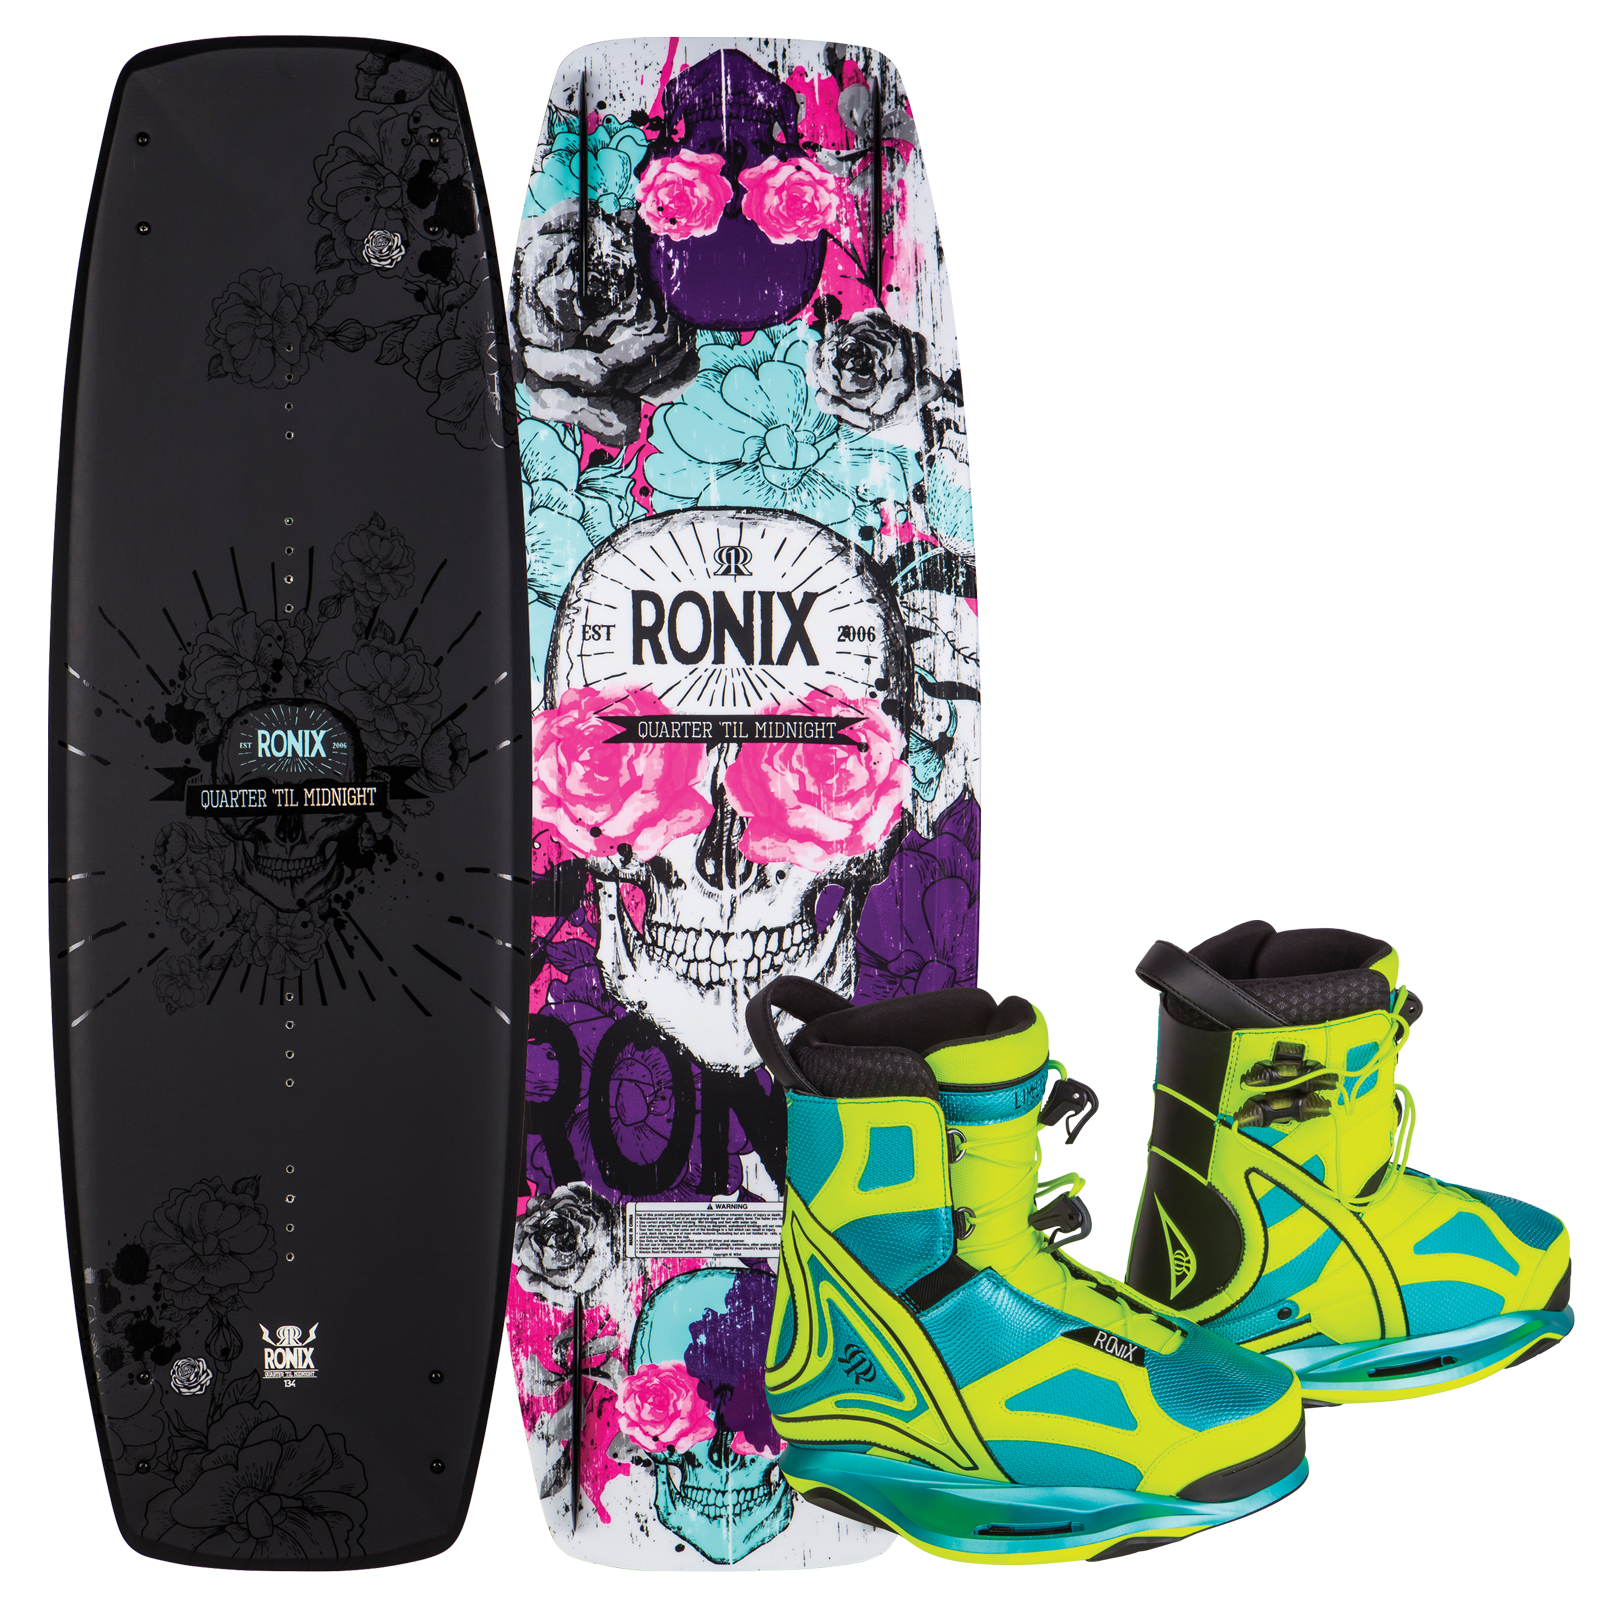 QUARTER 'TIL MIDNIGHT 134 W/ LIMELIGHT PACKAGE RONIX 2017